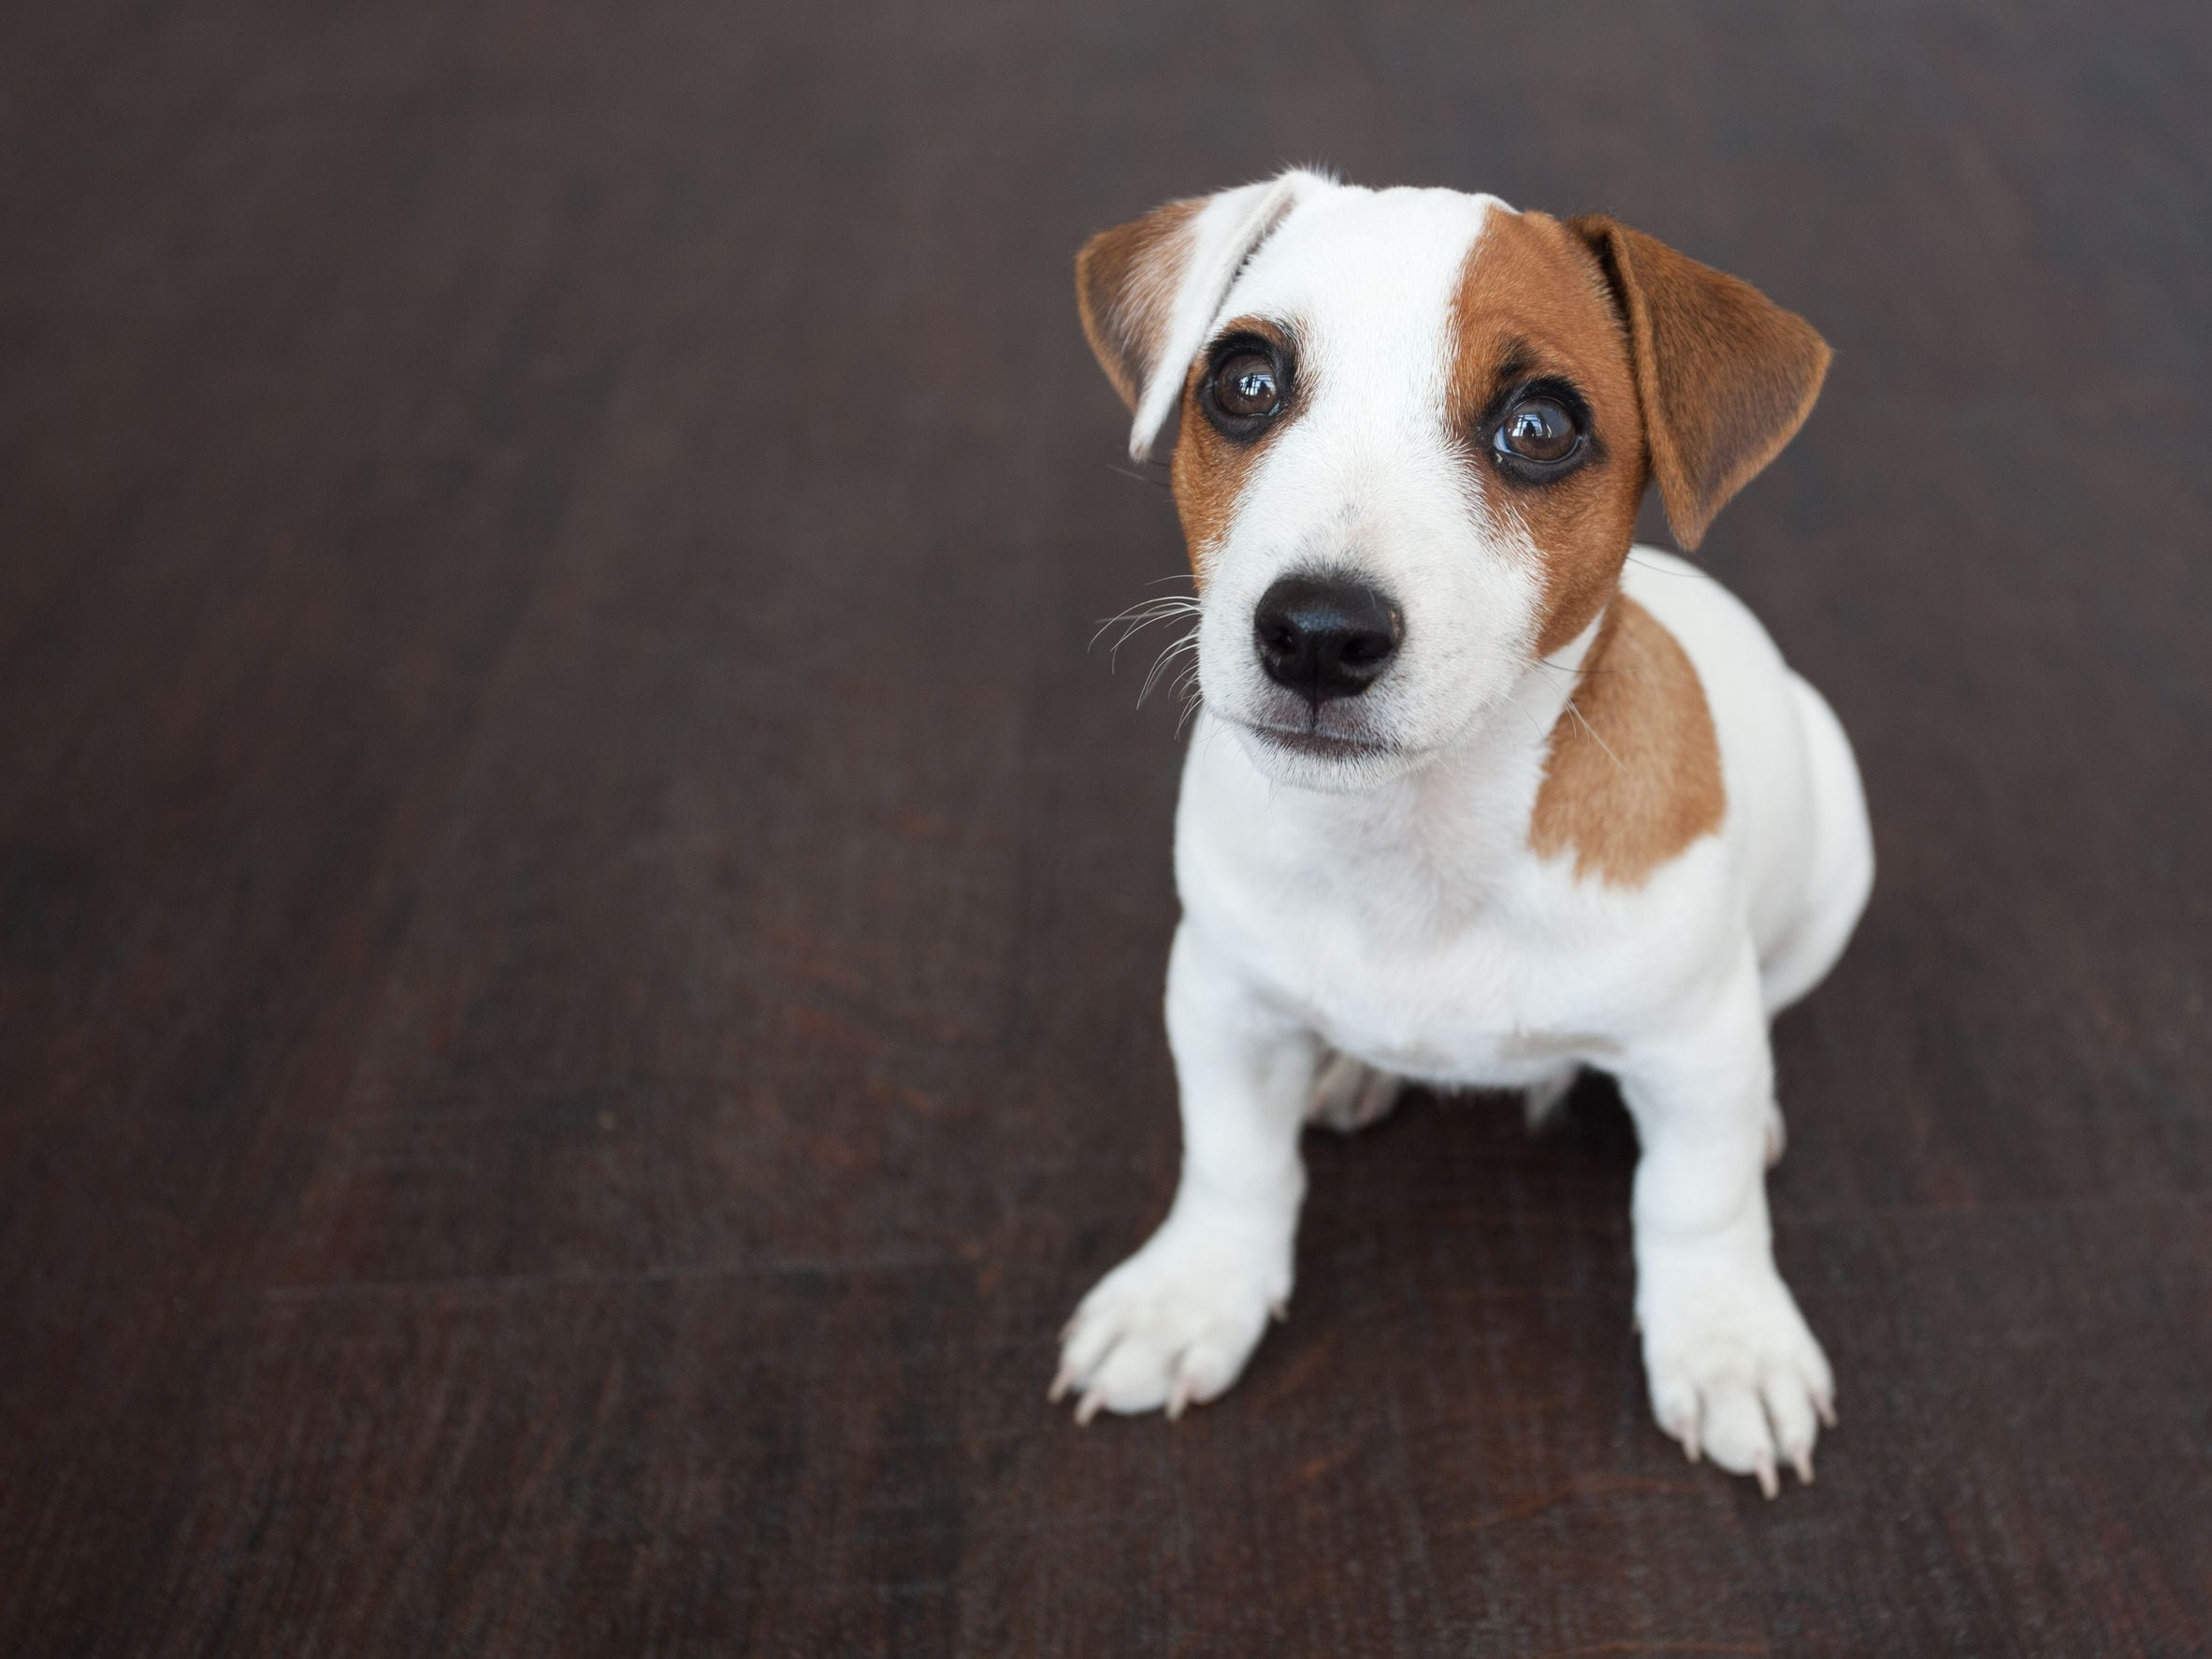 Does My Dog Have Worms? Here Are 8 Signs